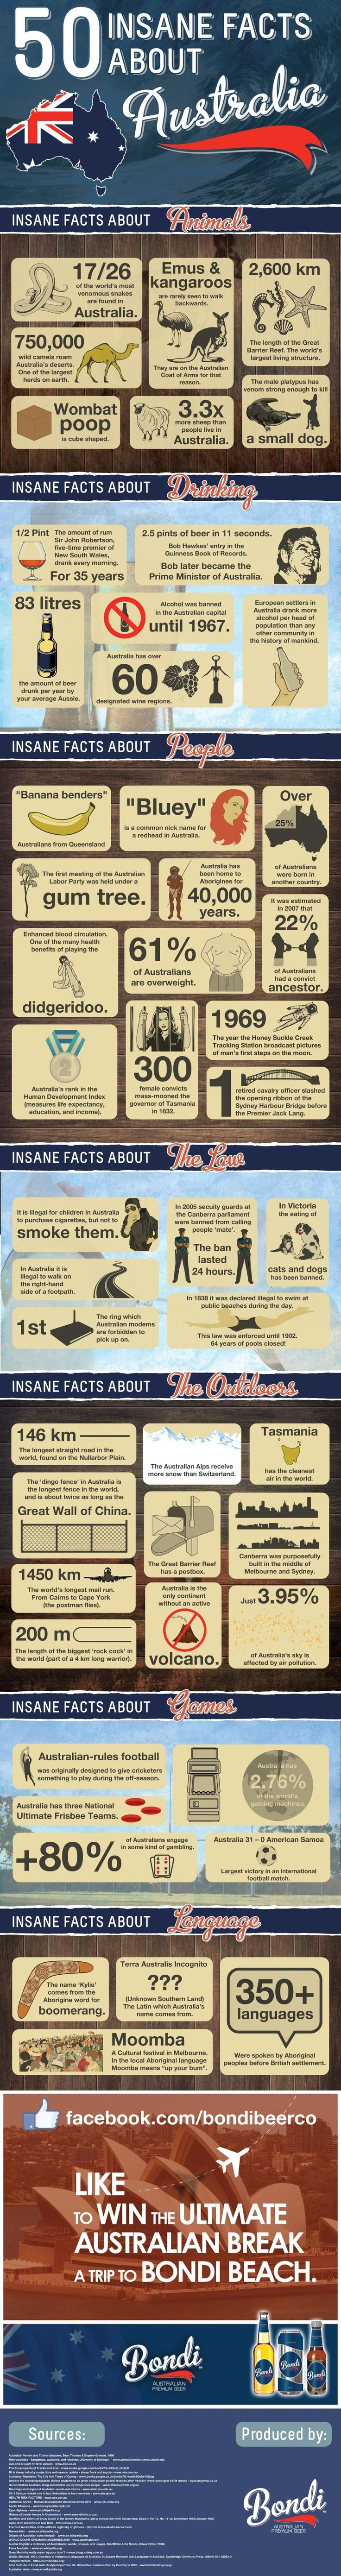 50 insane facts about Australia - for our school topic